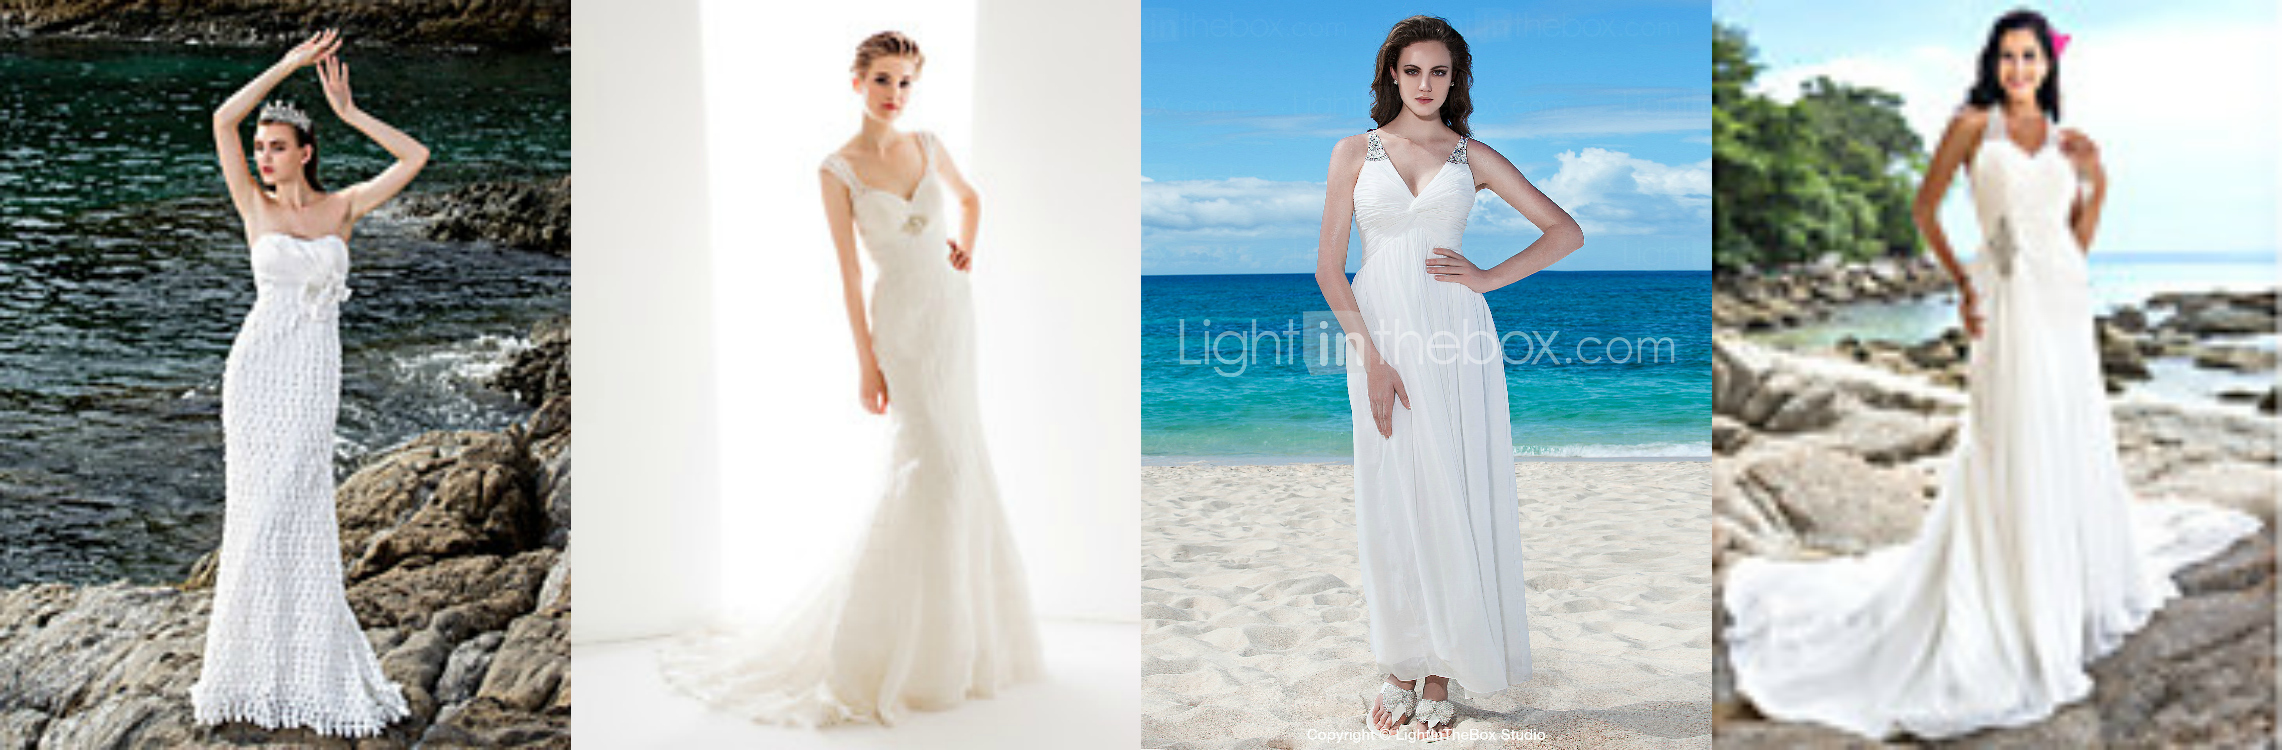 Difference Between Petite & Regular Sized Wedding Dresses - Bella Petite